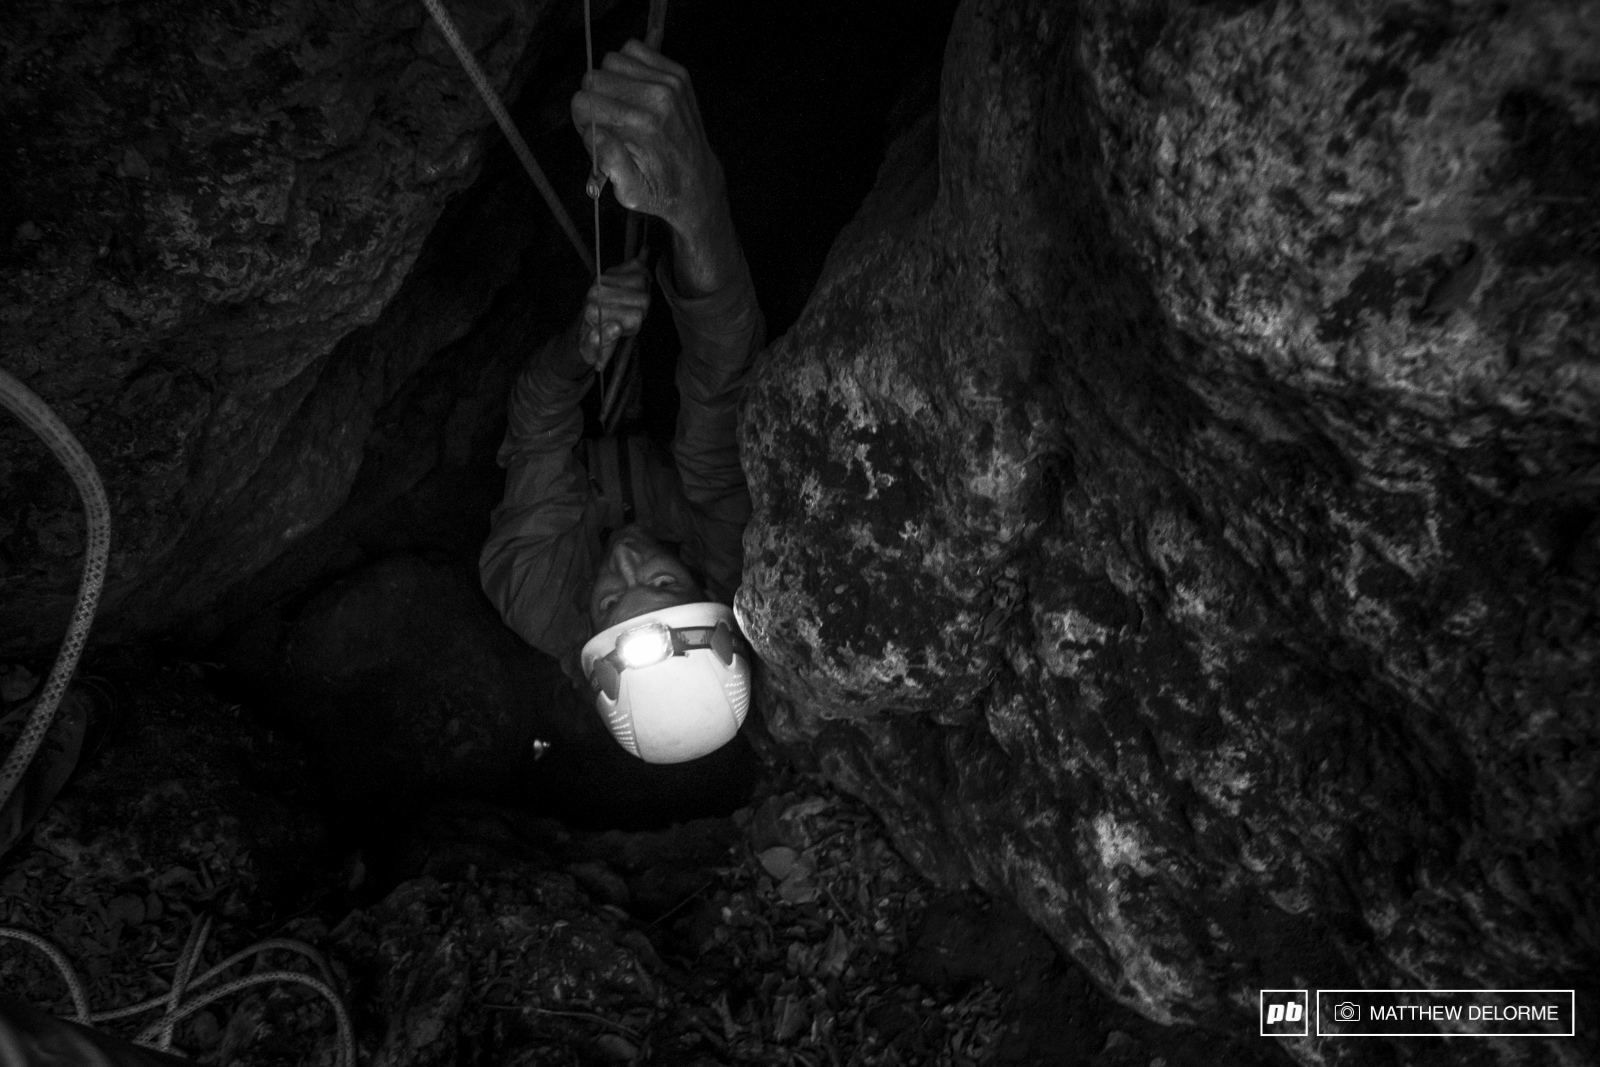 Dave crawls his way out of a deep dark crevice.